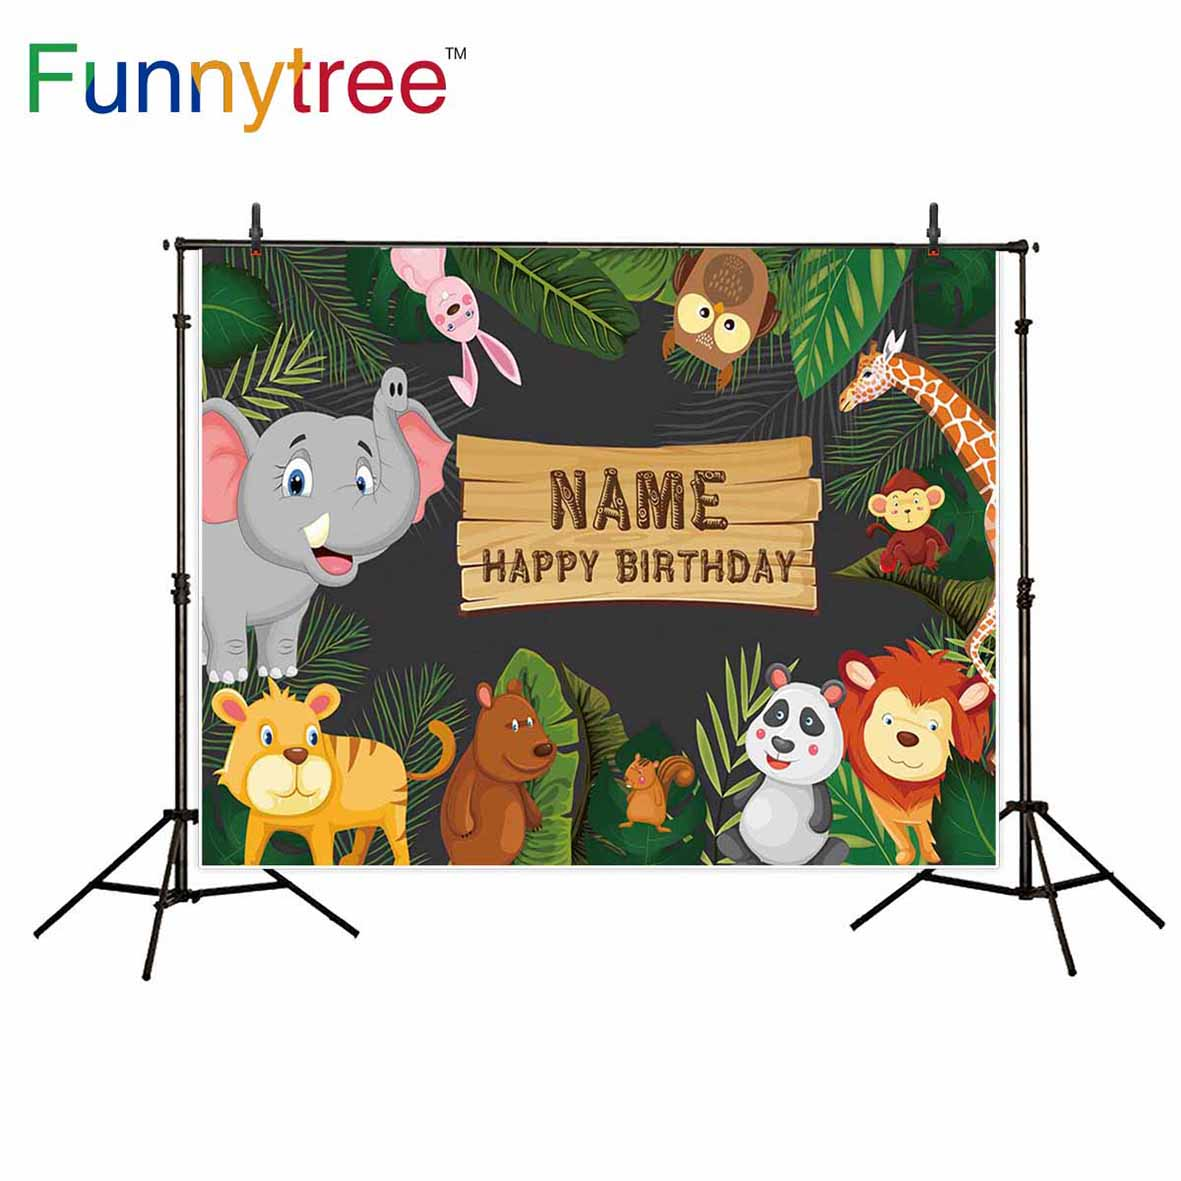 Funnytree birthday backgrounds for photography studio animals cartoon leaves forest kid photo backdrop printed photocall